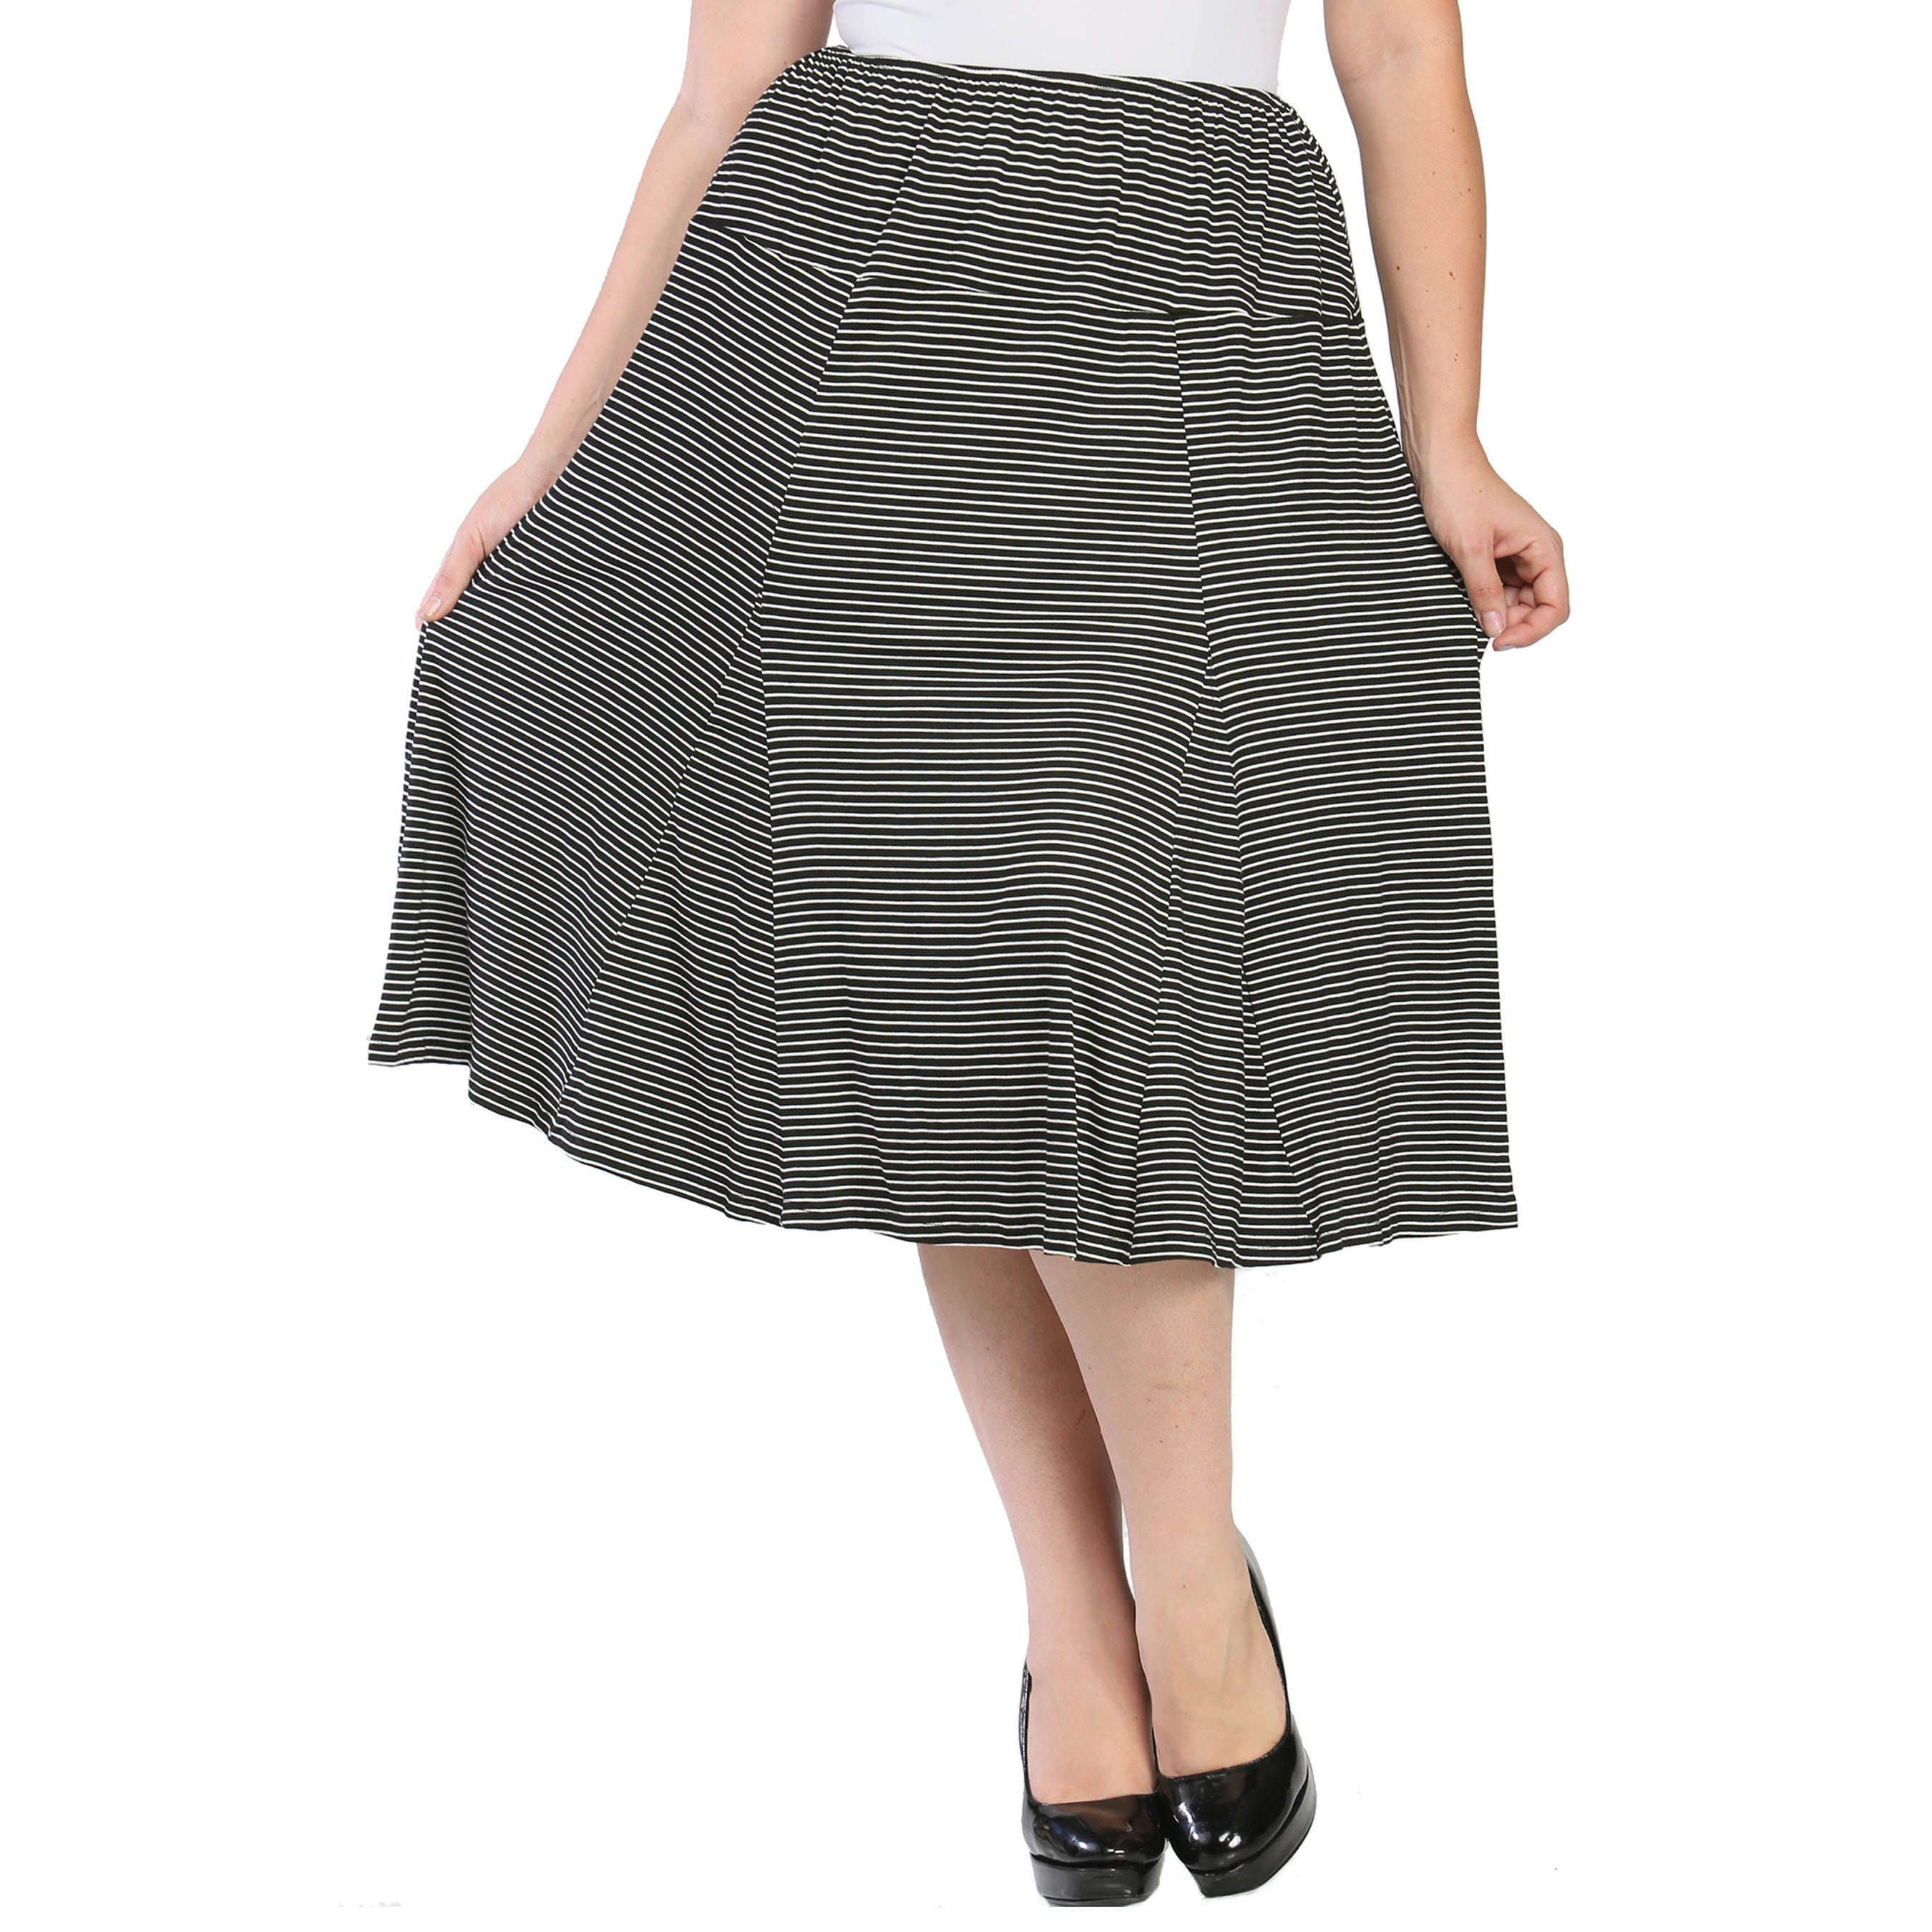 6580d37c9d68 Shop 24/7 Comfort Apparel Women's Plus Size Striped Calf-length Skirt -  Free Shipping On Orders Over $45 - Overstock.com - 9464282